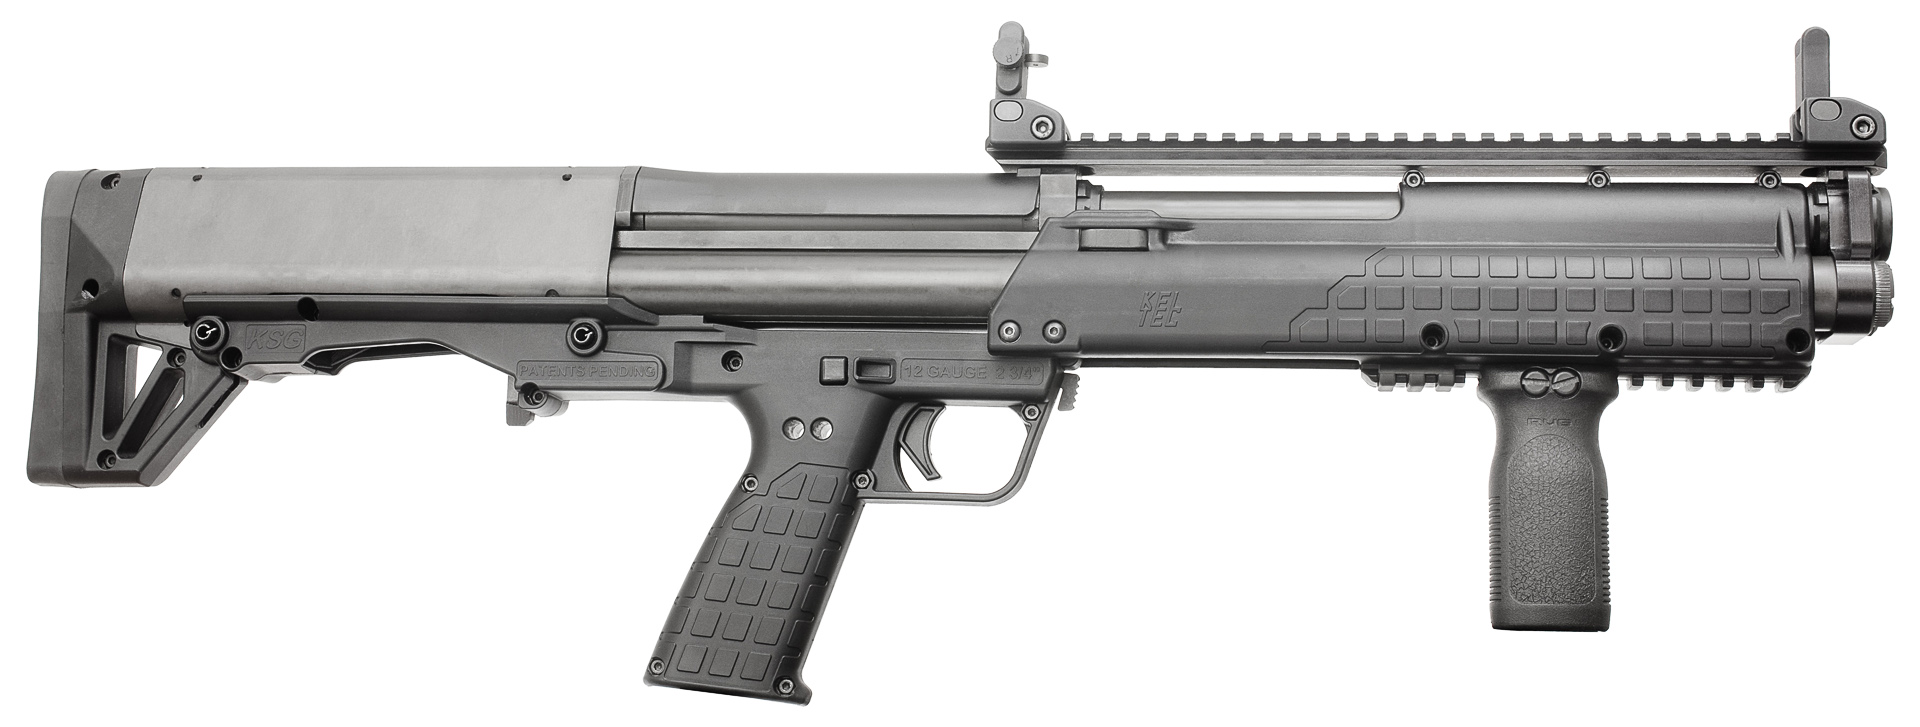 KSG photos - KSG Bullpup Shotgun